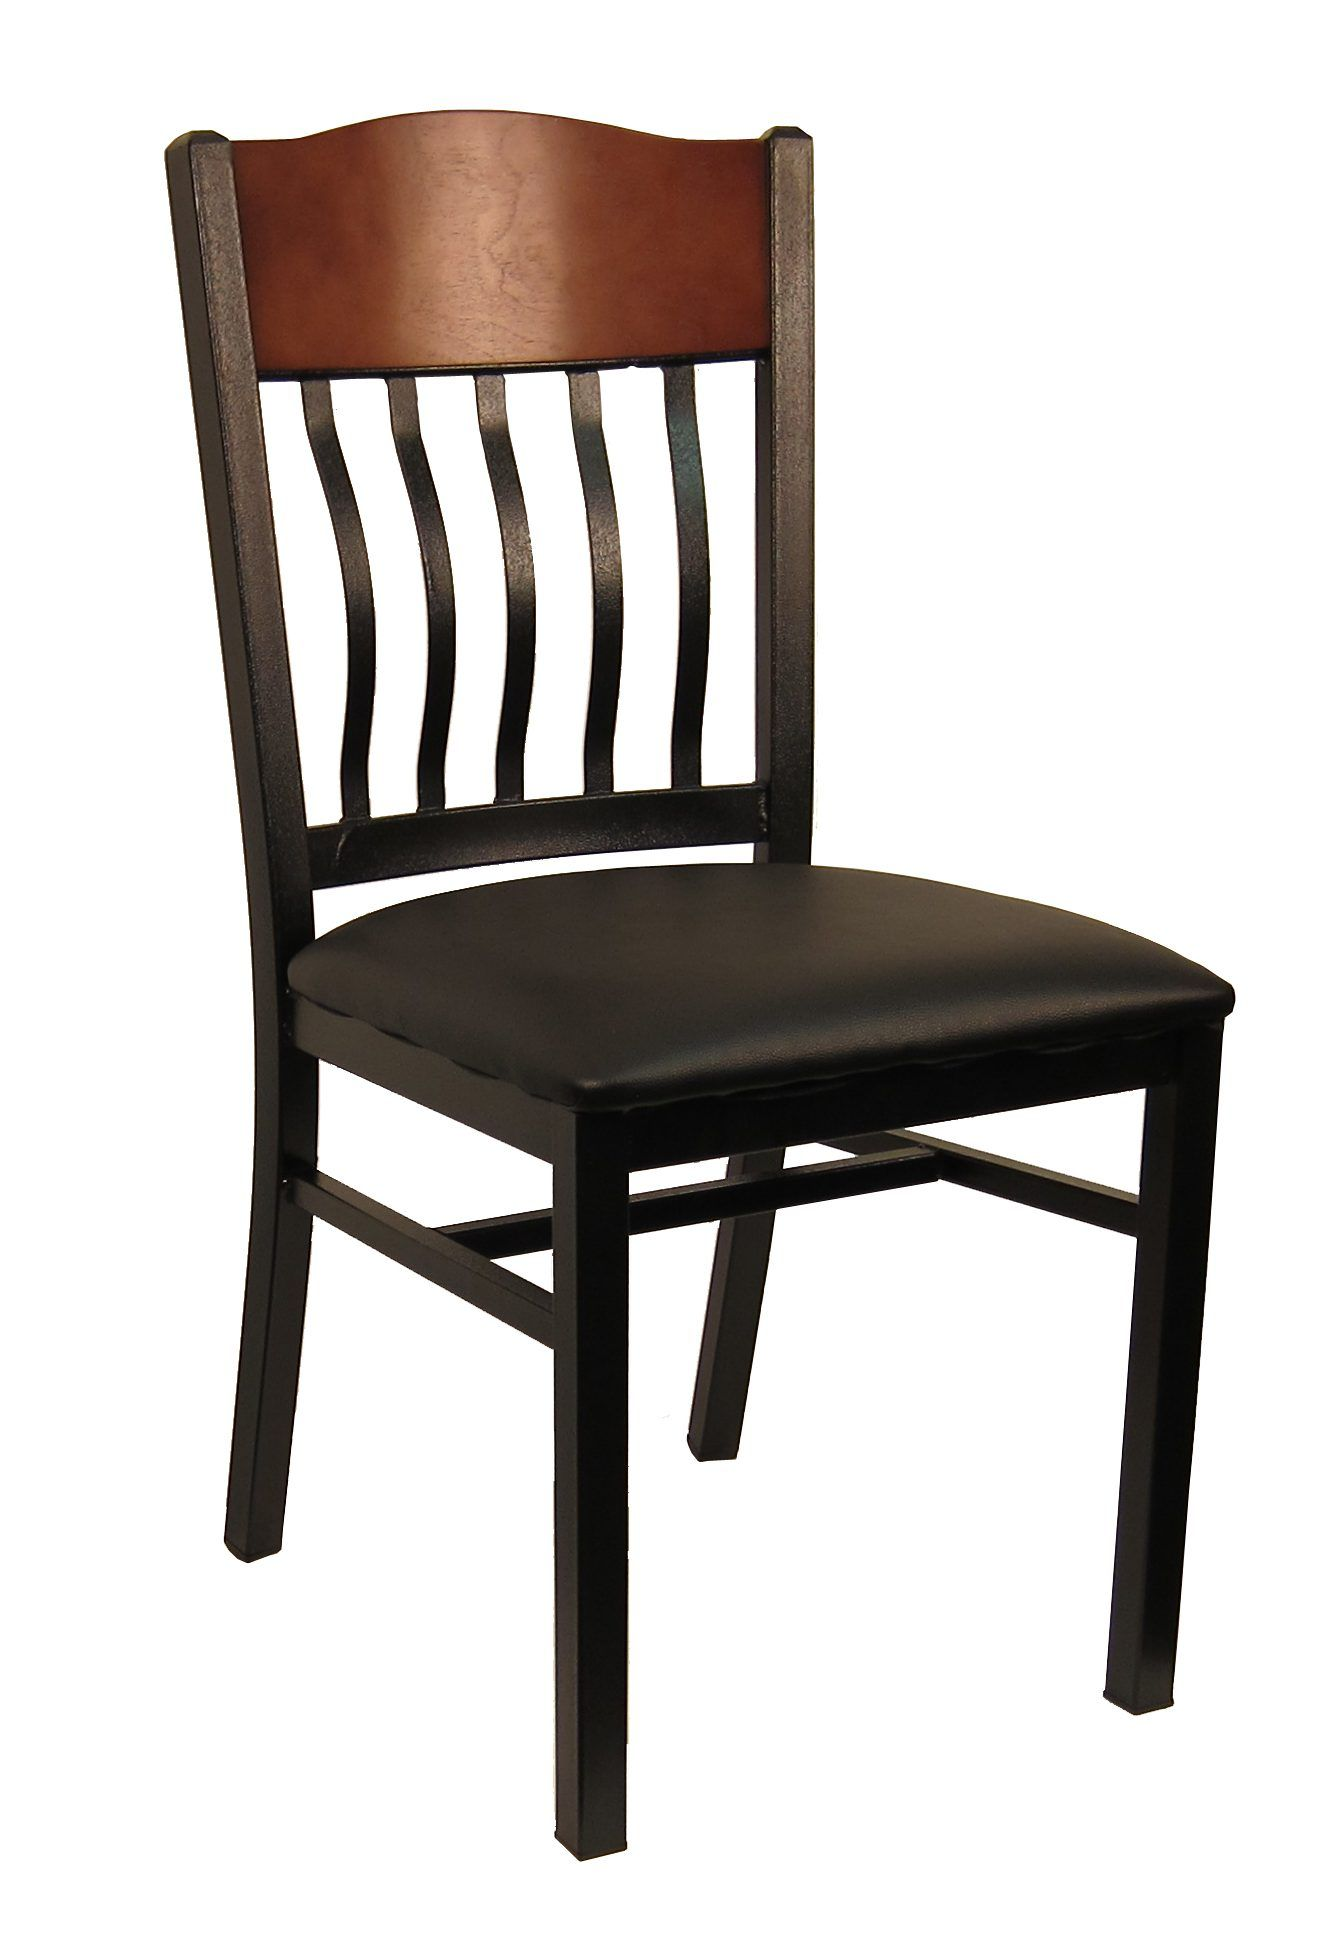 Wood Top Strap Back Chair Restaurant furniture chairs